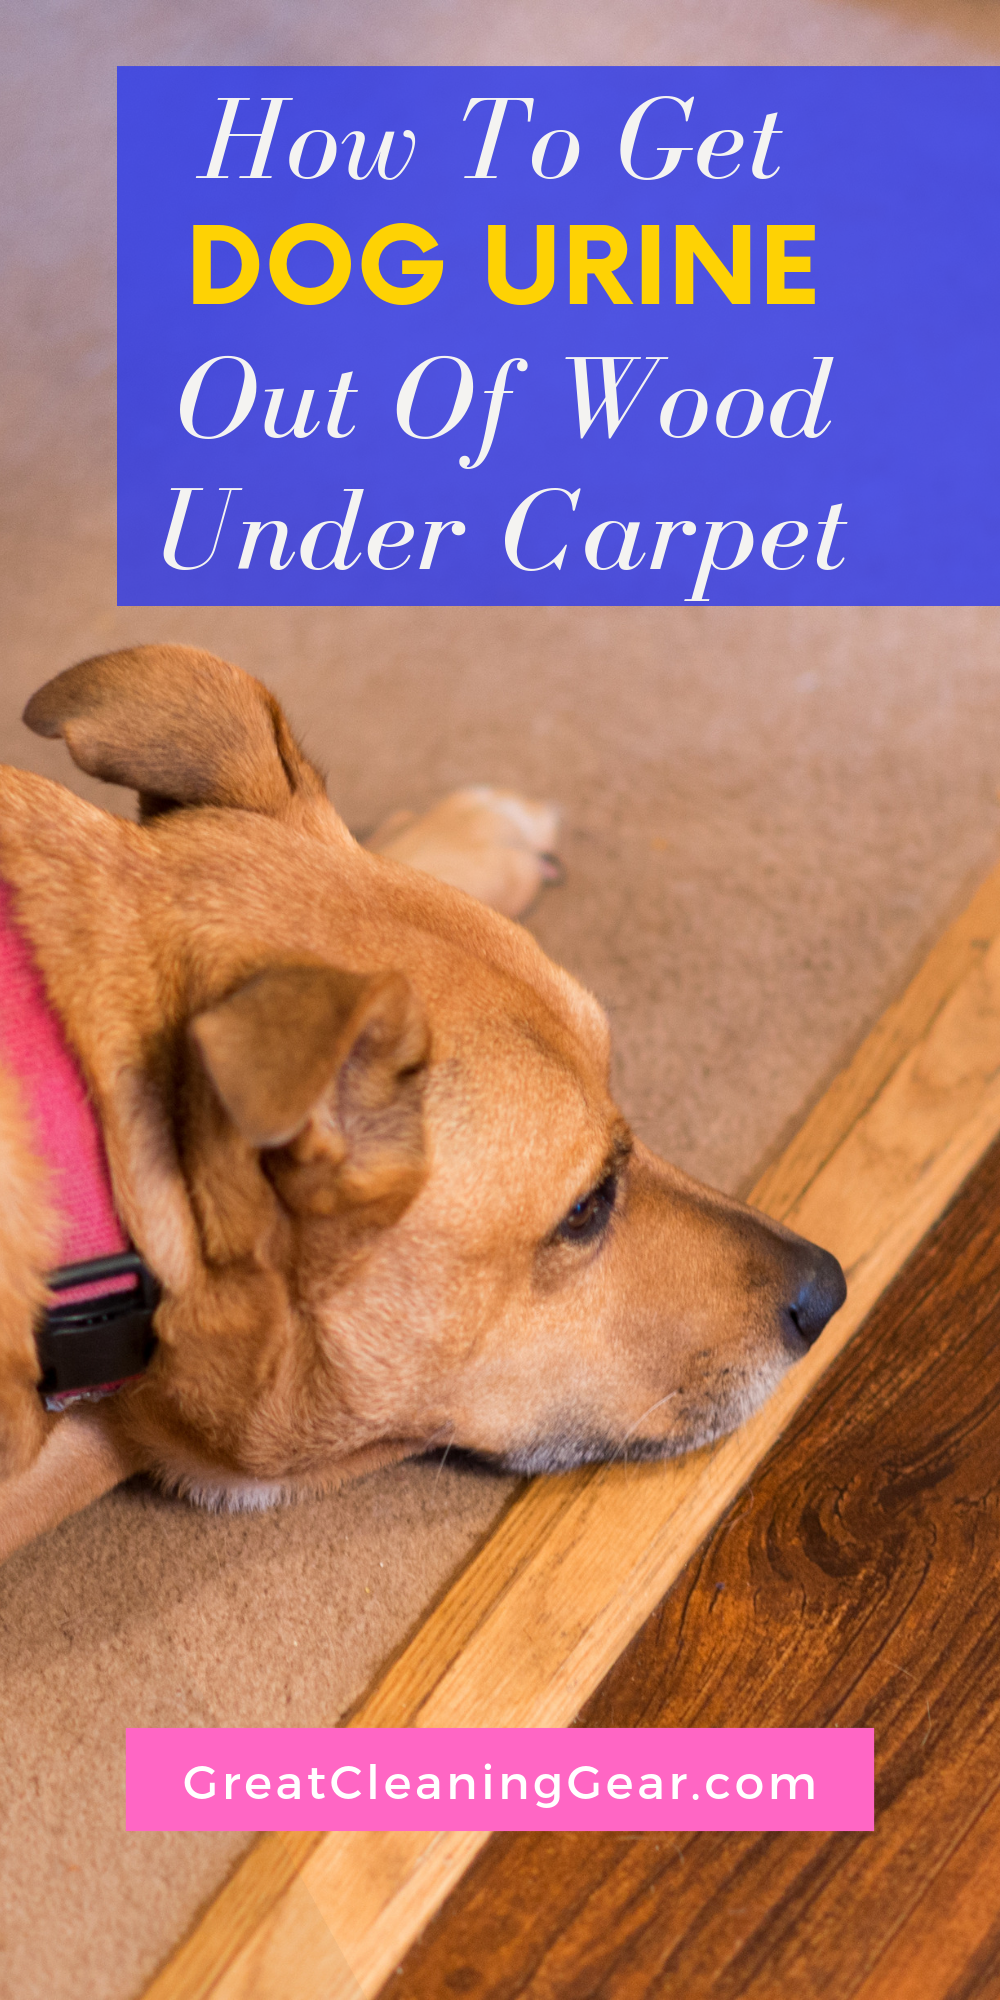 Cleaning Dog Urine Out Of Wood Floors